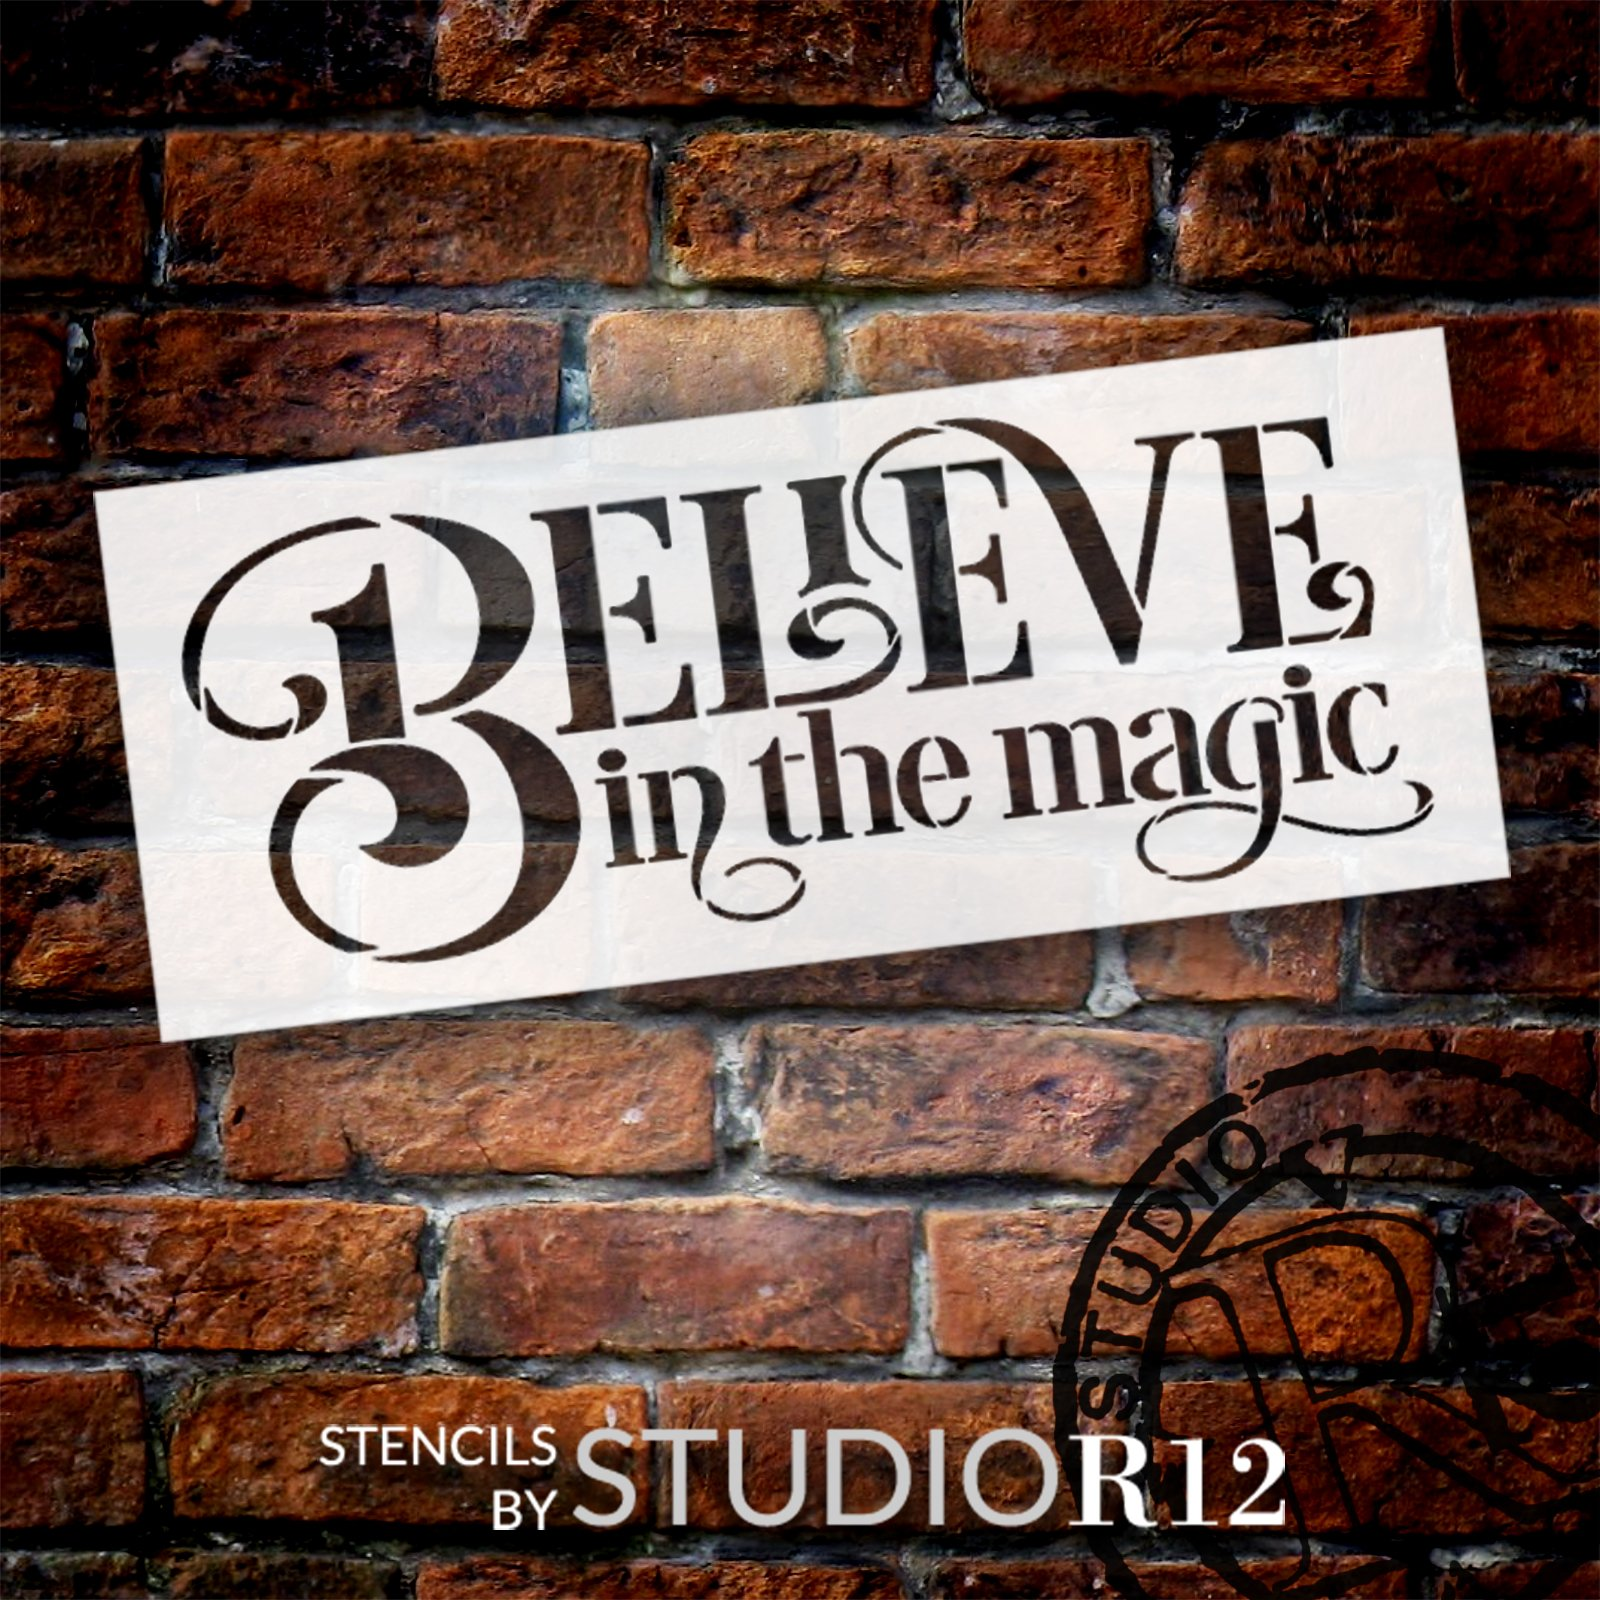 Believe in The Magic Stencil by StudioR12   Craft DIY Christmas Holiday Home Decor   Paint Winter Wood Sign   Reusable Mylar Template   Select Size